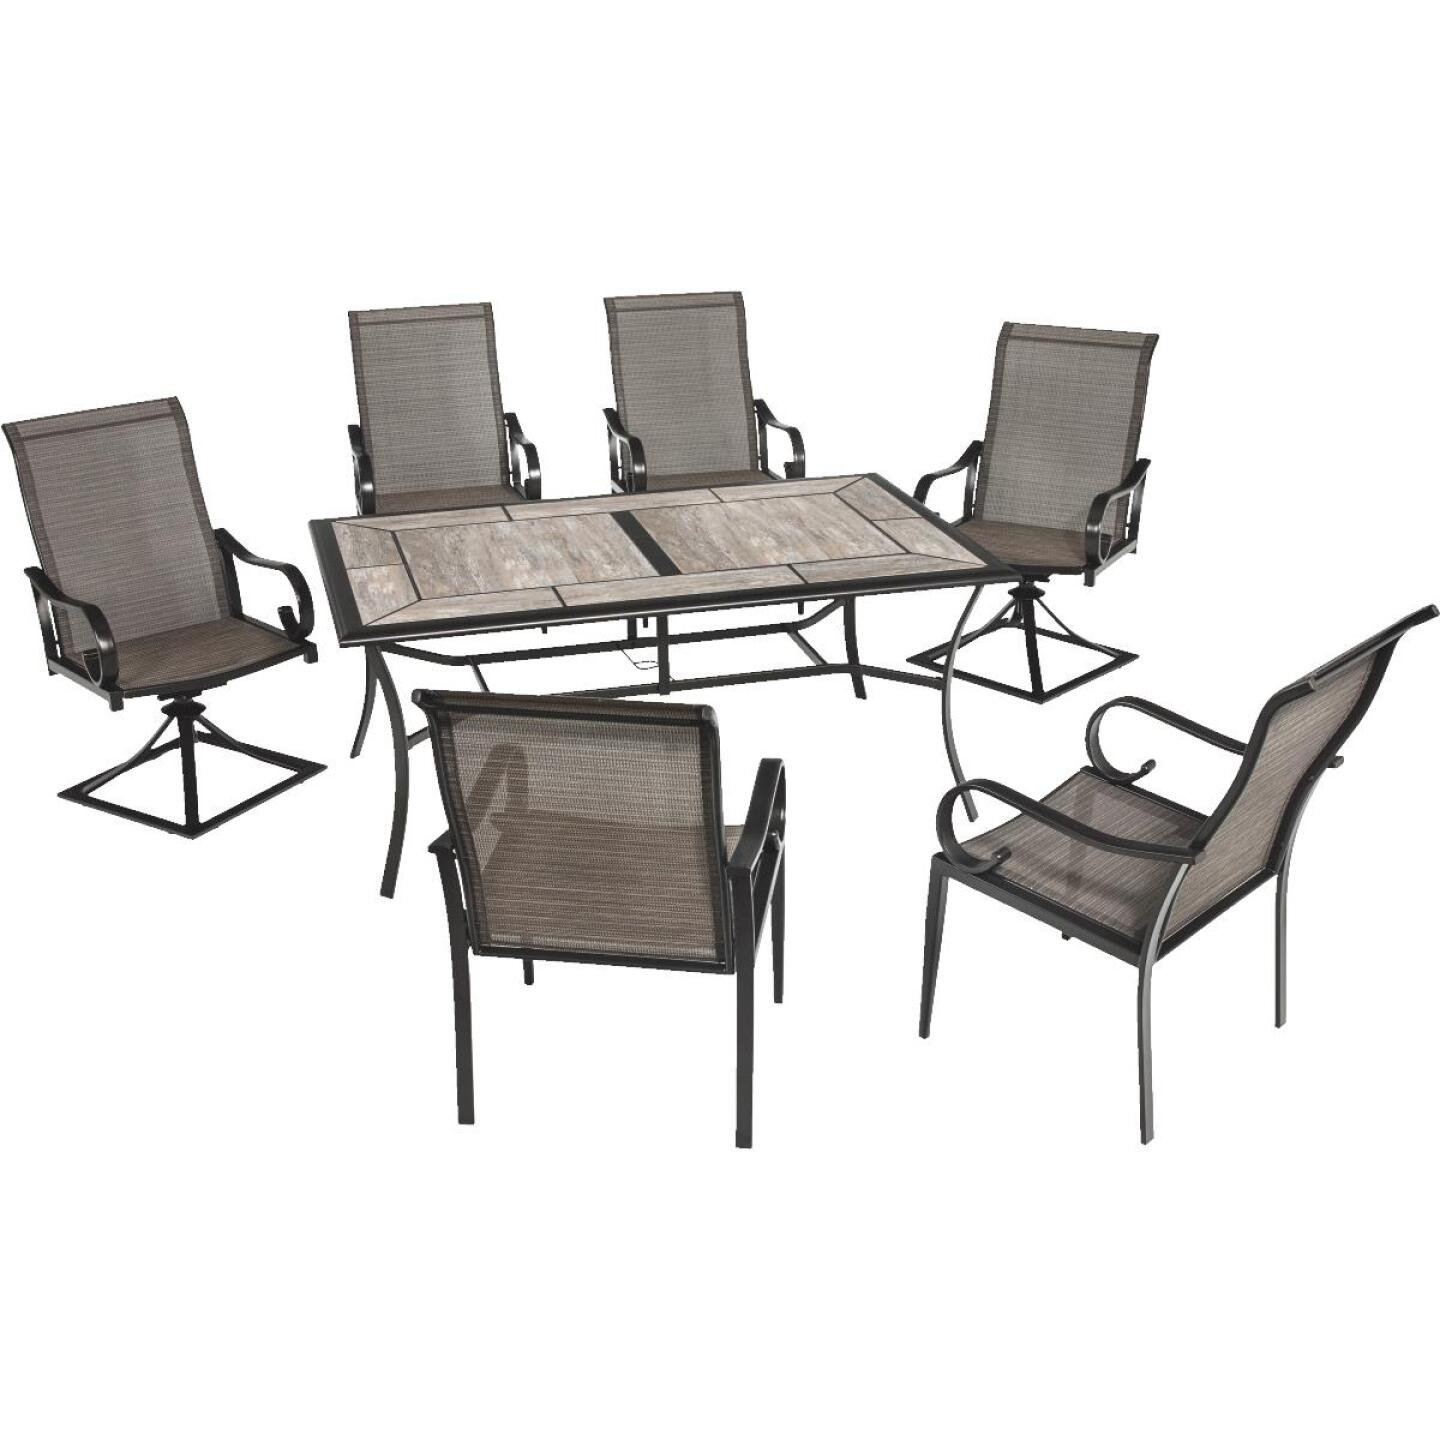 Outdoor Expressions Berkshire 7-Piece Dining Set Image 183